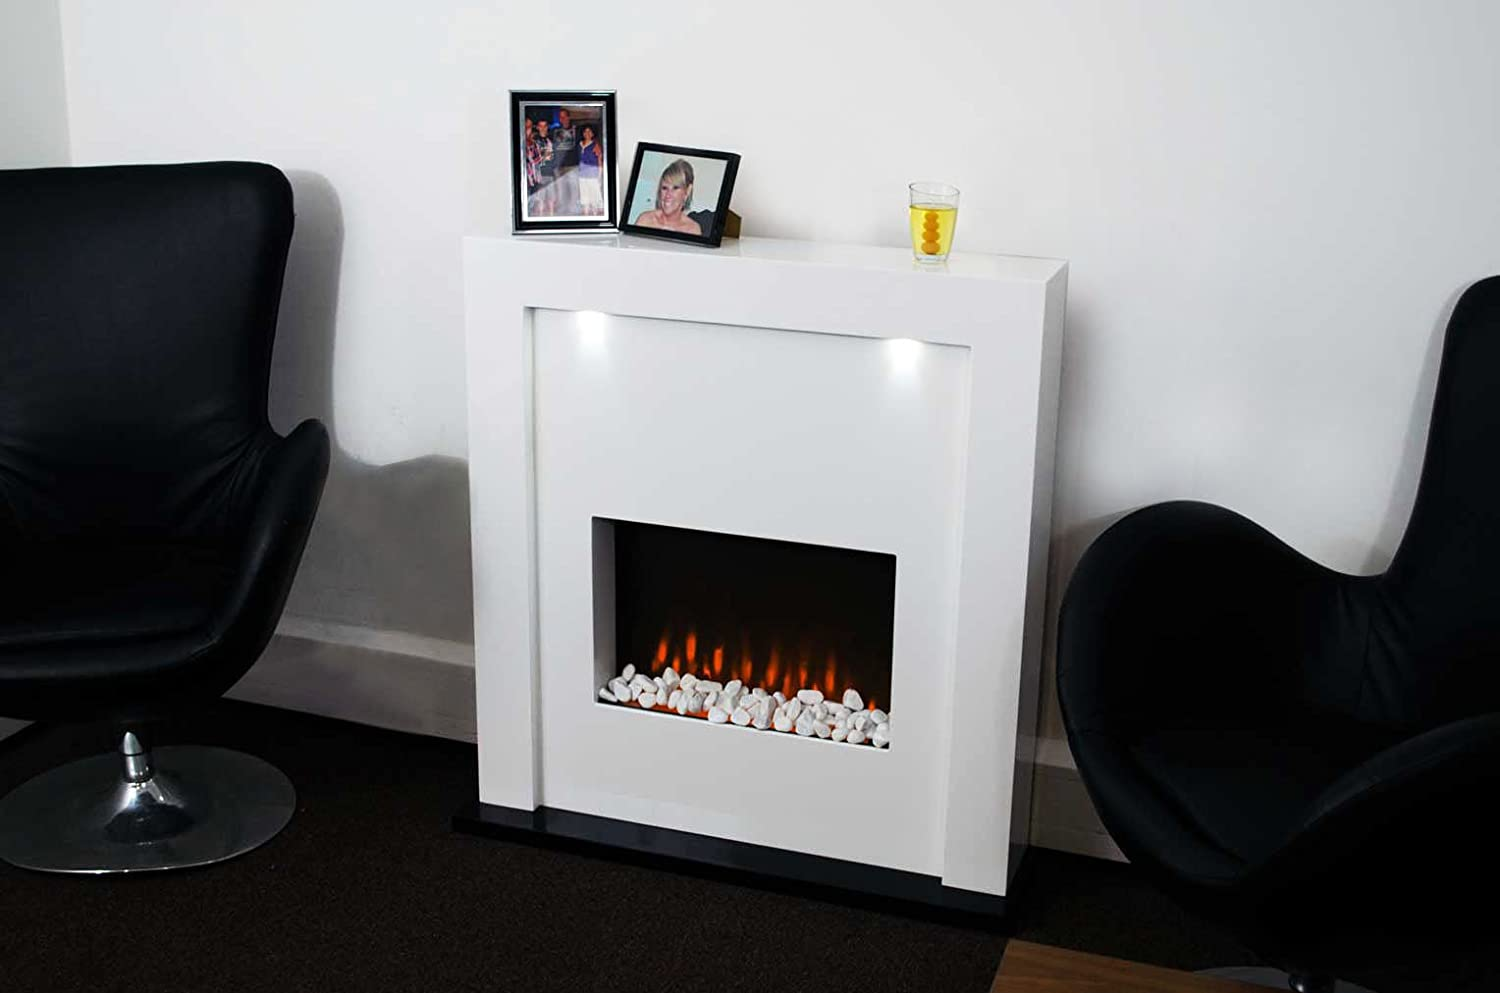 Electric Fireplace Fire Surround Living Room Floor Standing LED Lights MDF Inset: Amazon.co.uk: Kitchen & Home